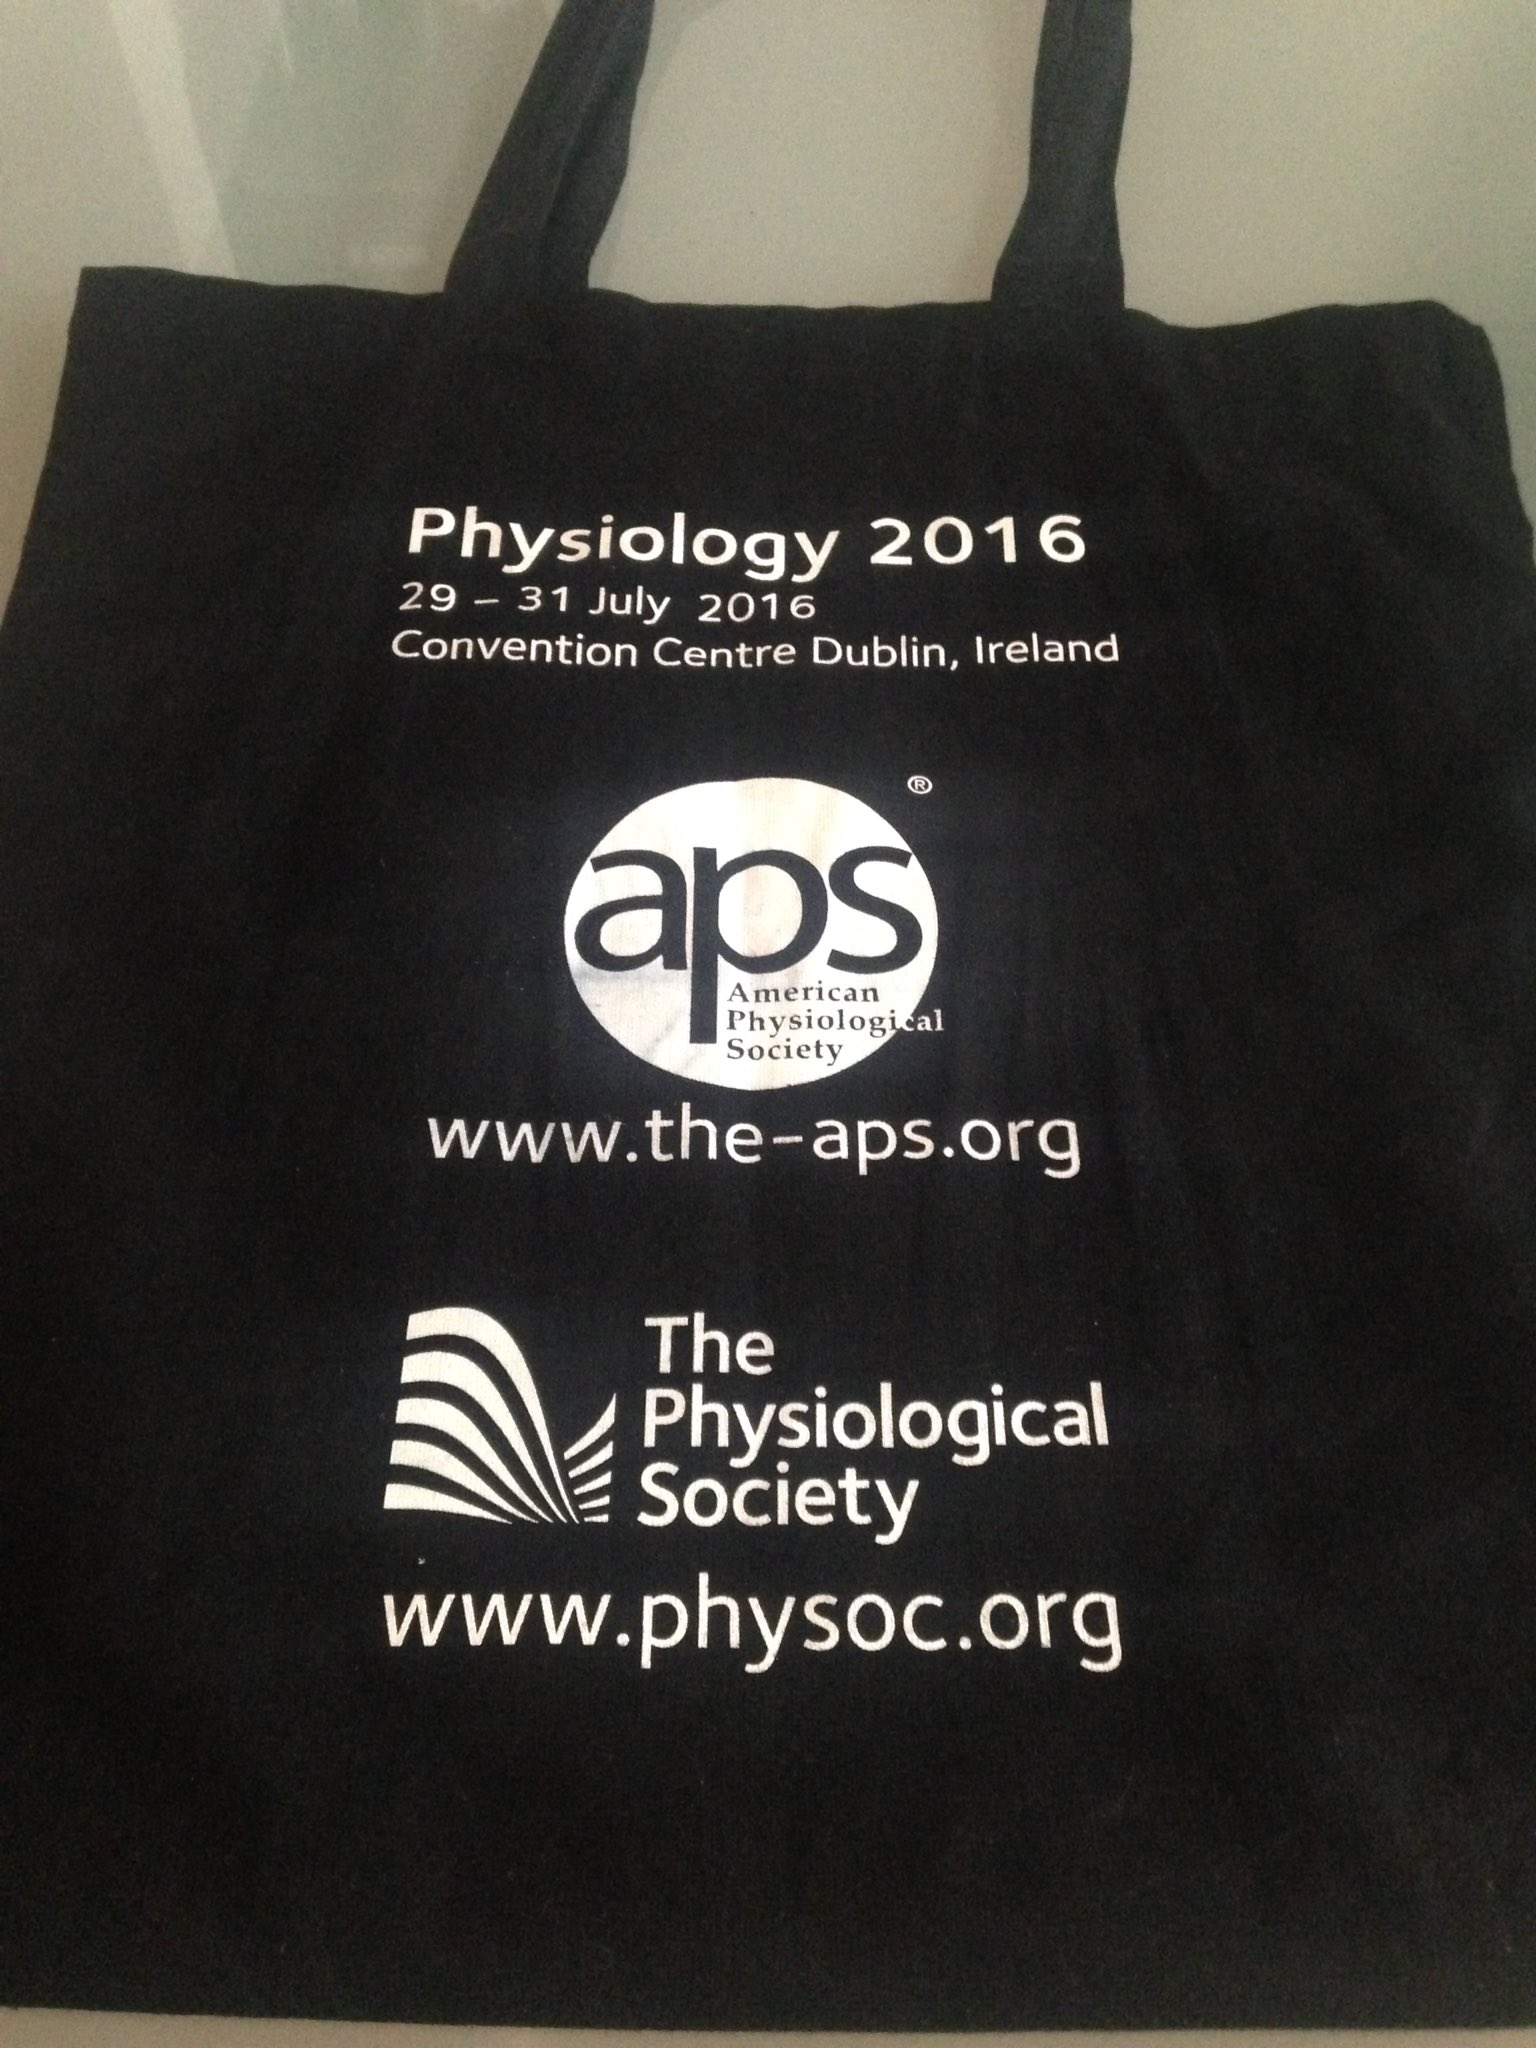 #physiology2016 #sneakpeak https://t.co/1GM25Z17LF